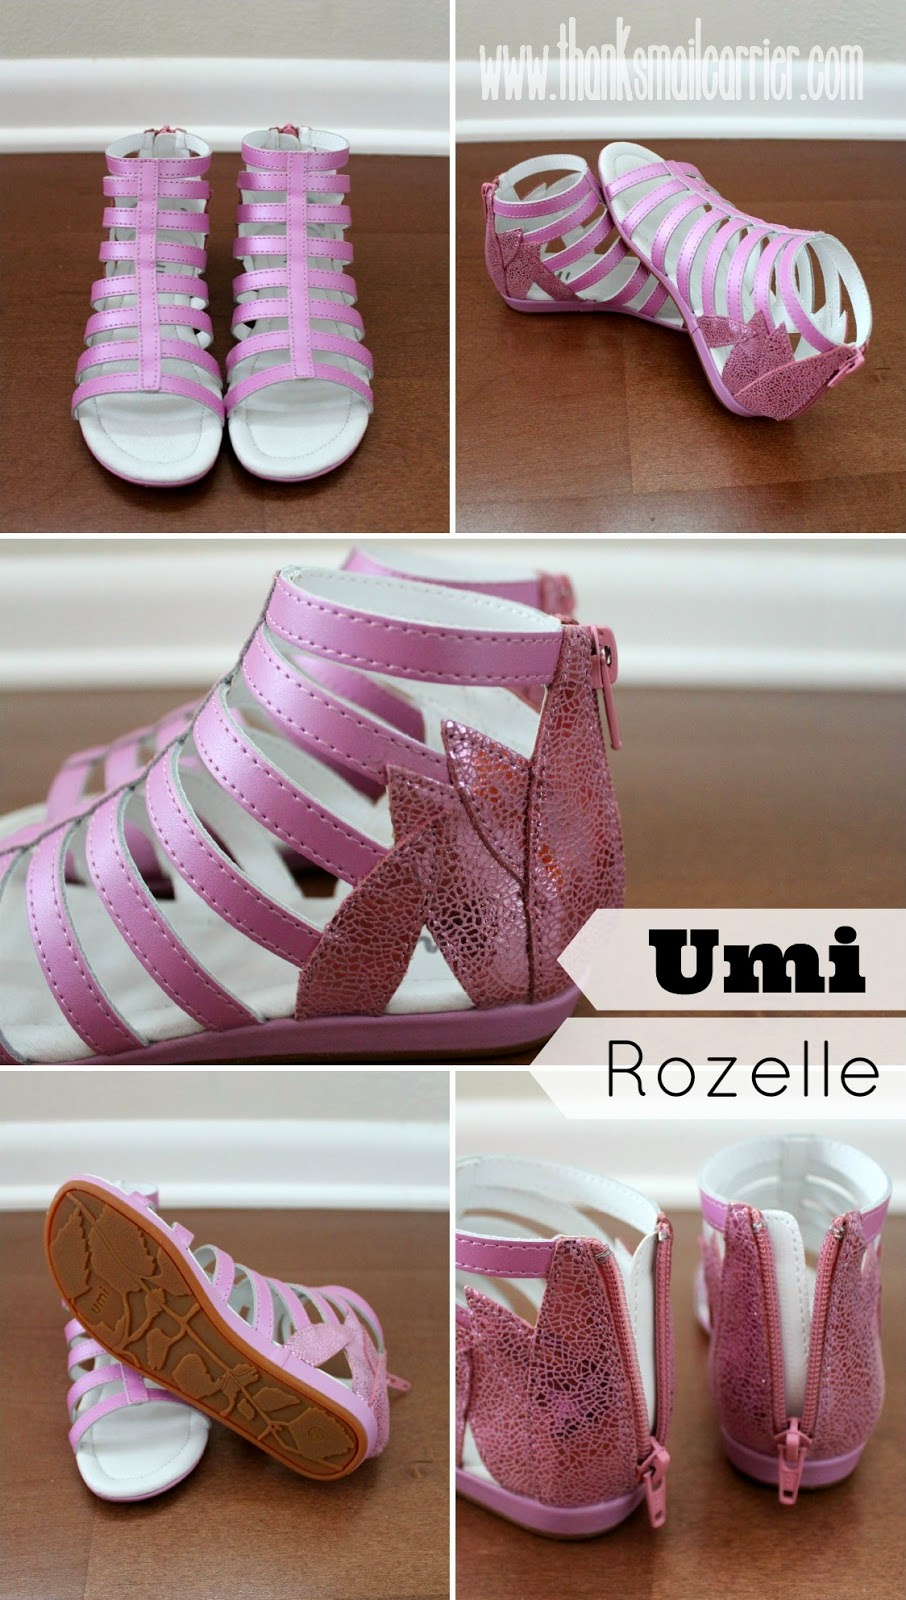 Umi Rozelle review